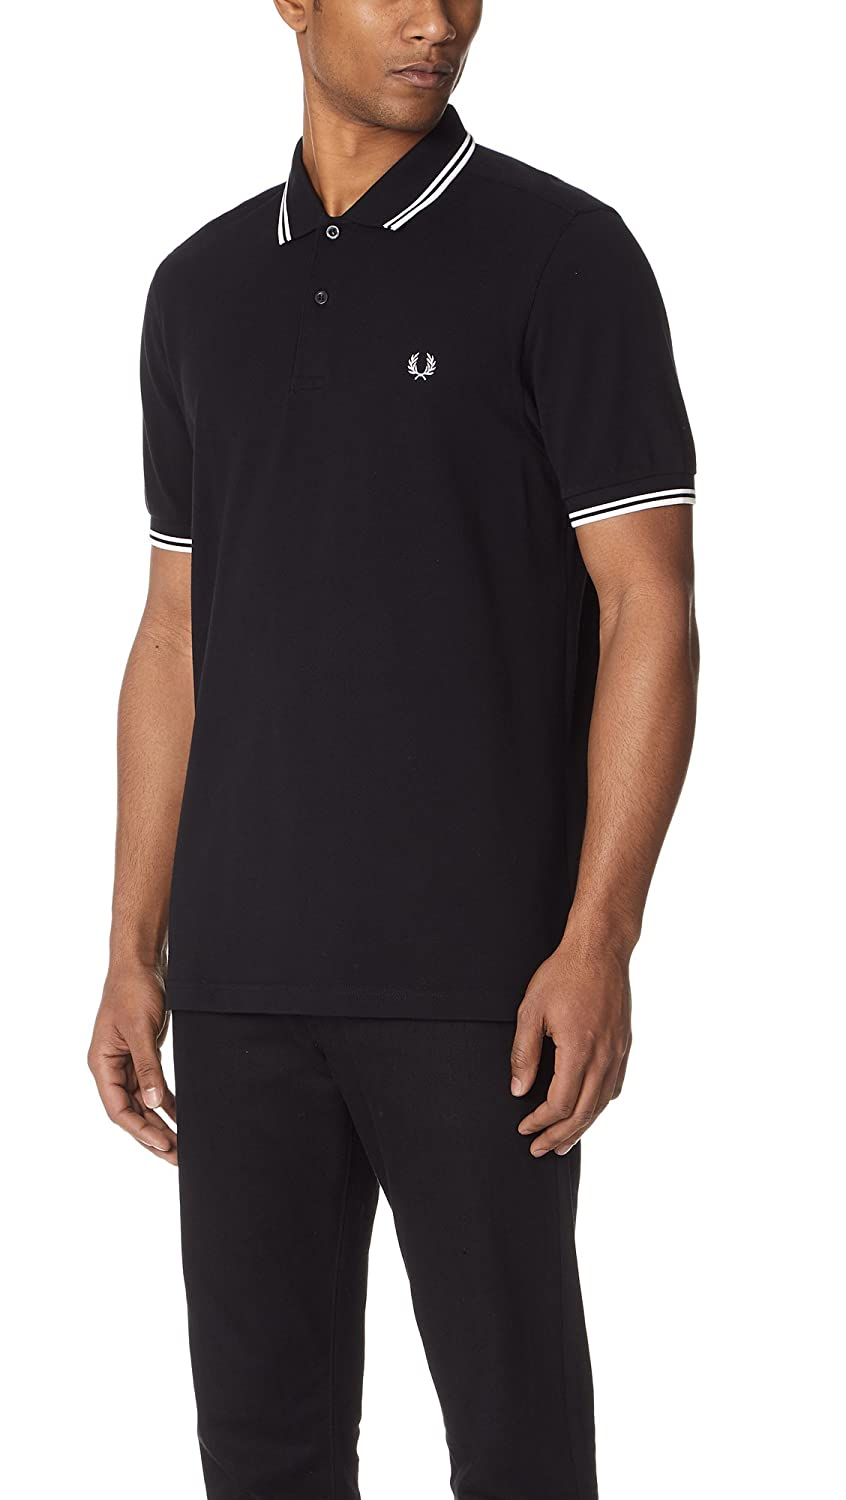 Mens Designer Polo Shirts Sale Uk Rldm